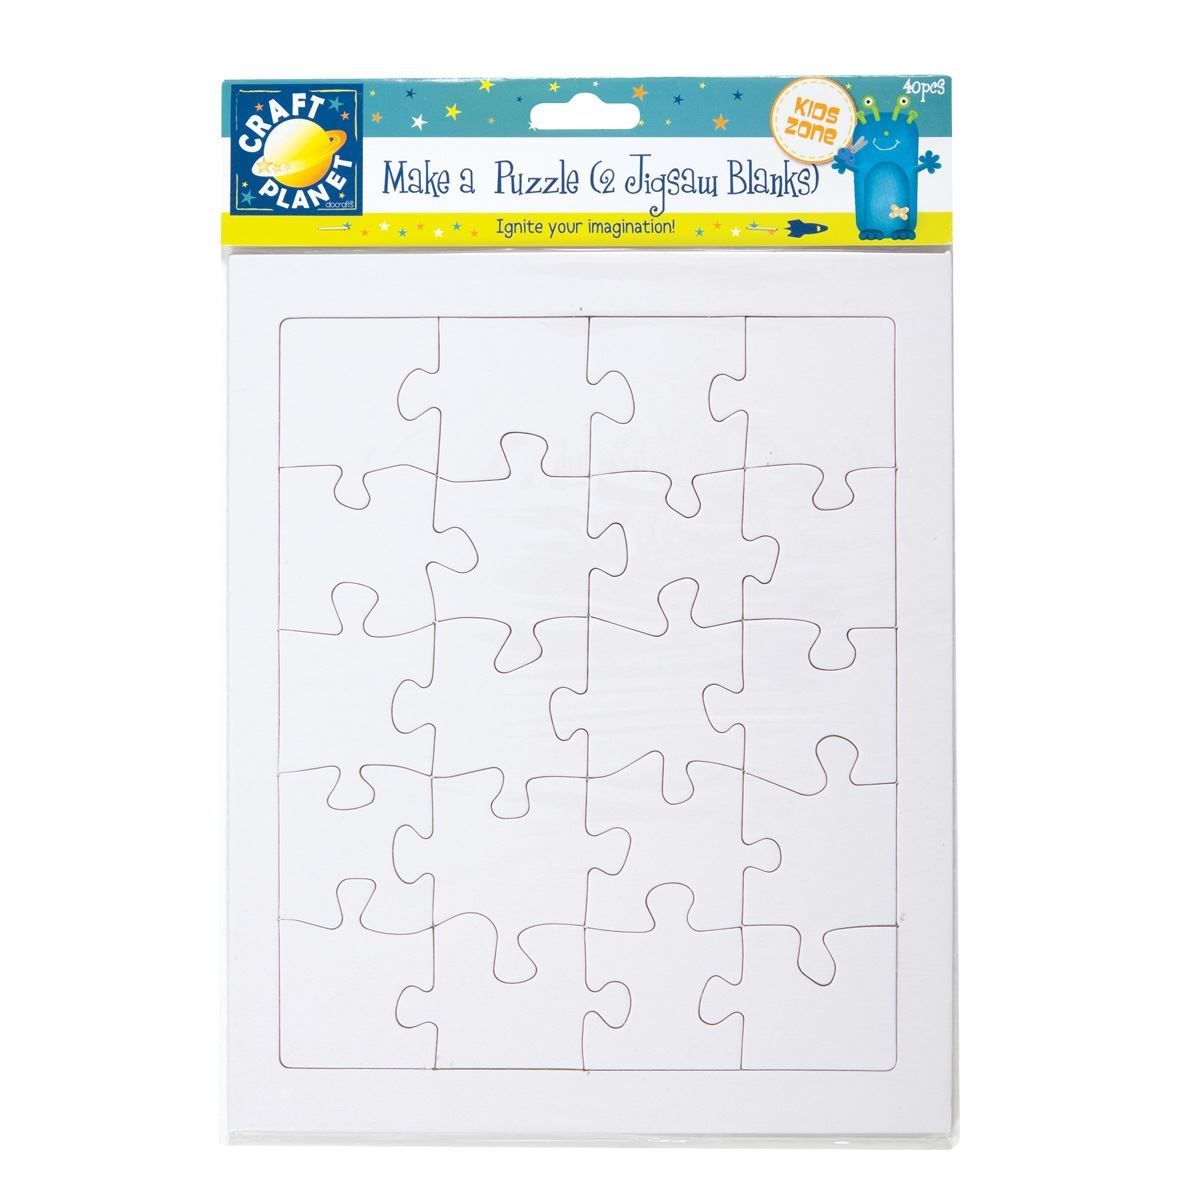 Make a Puzzle 2 Blanks